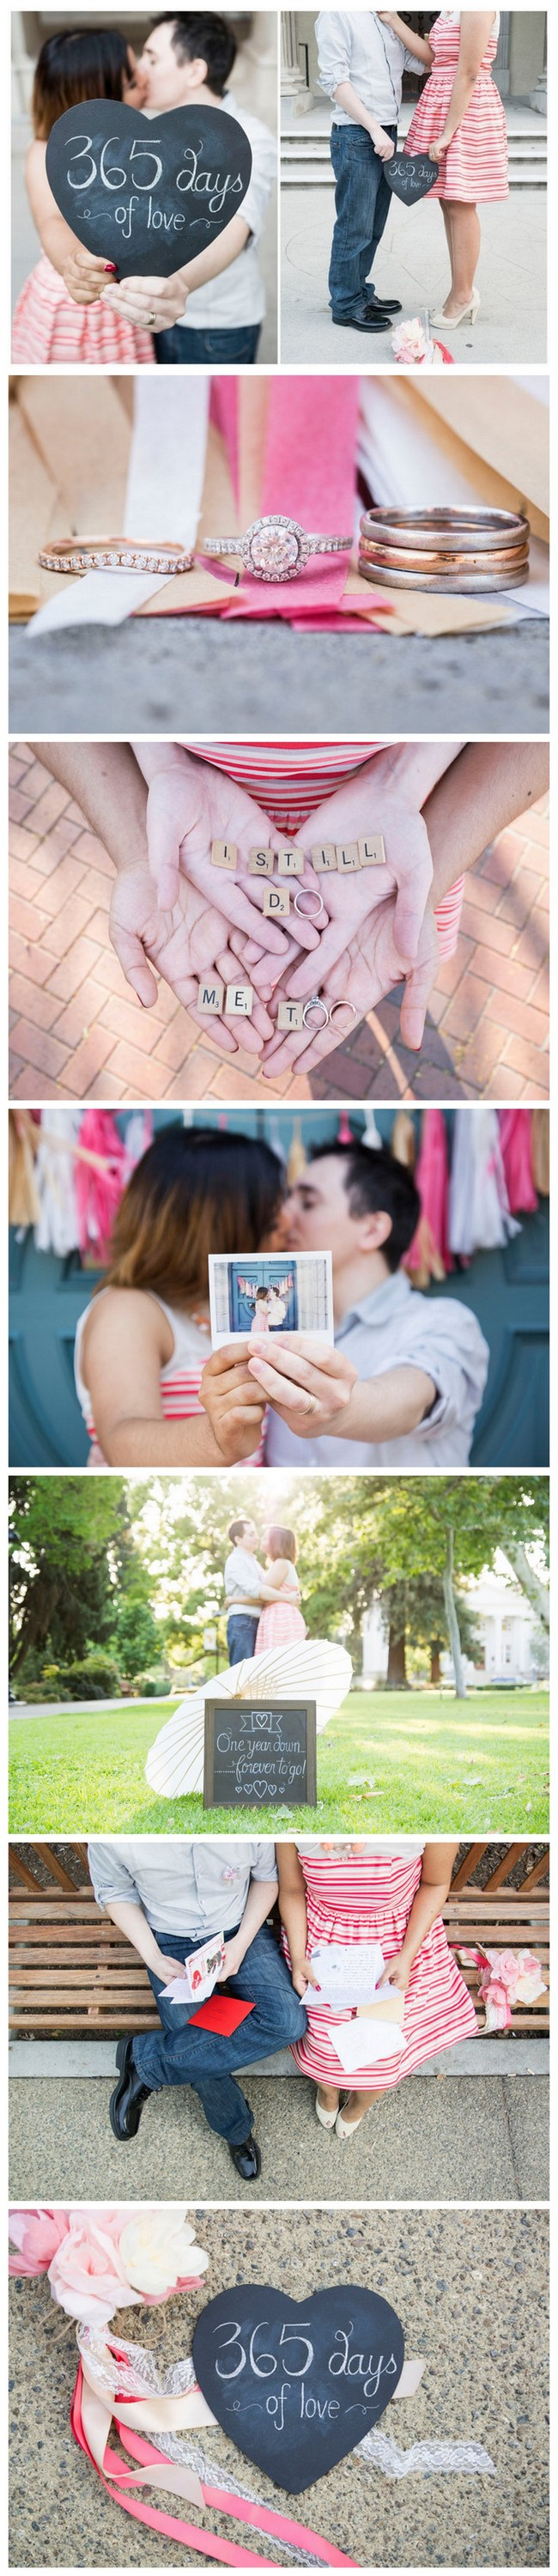 Super Sweet Wedding Anniversary Photo Ideas: https://confettidaydreams.com/cute-first-wedding-anniversary-photo-ideas/